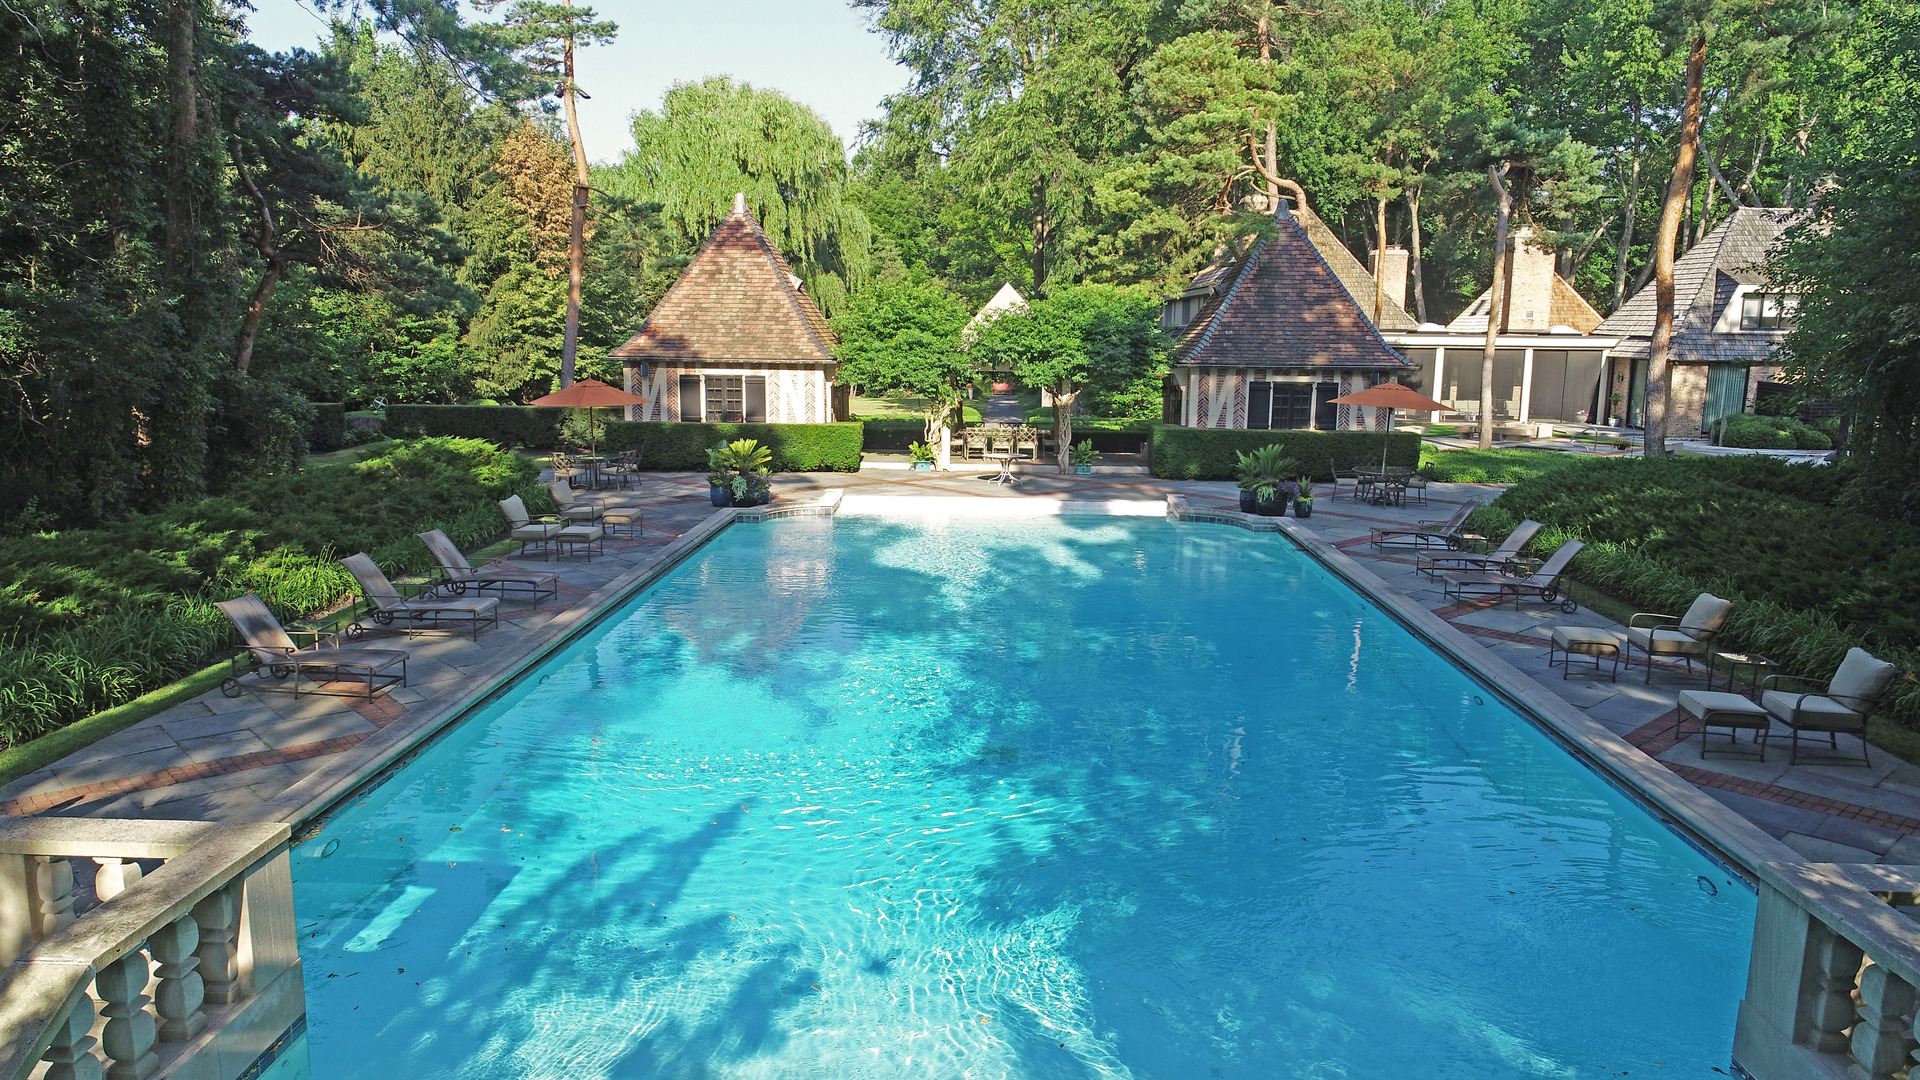 211 West Westminster, Lake Forest, Illinois, 60045